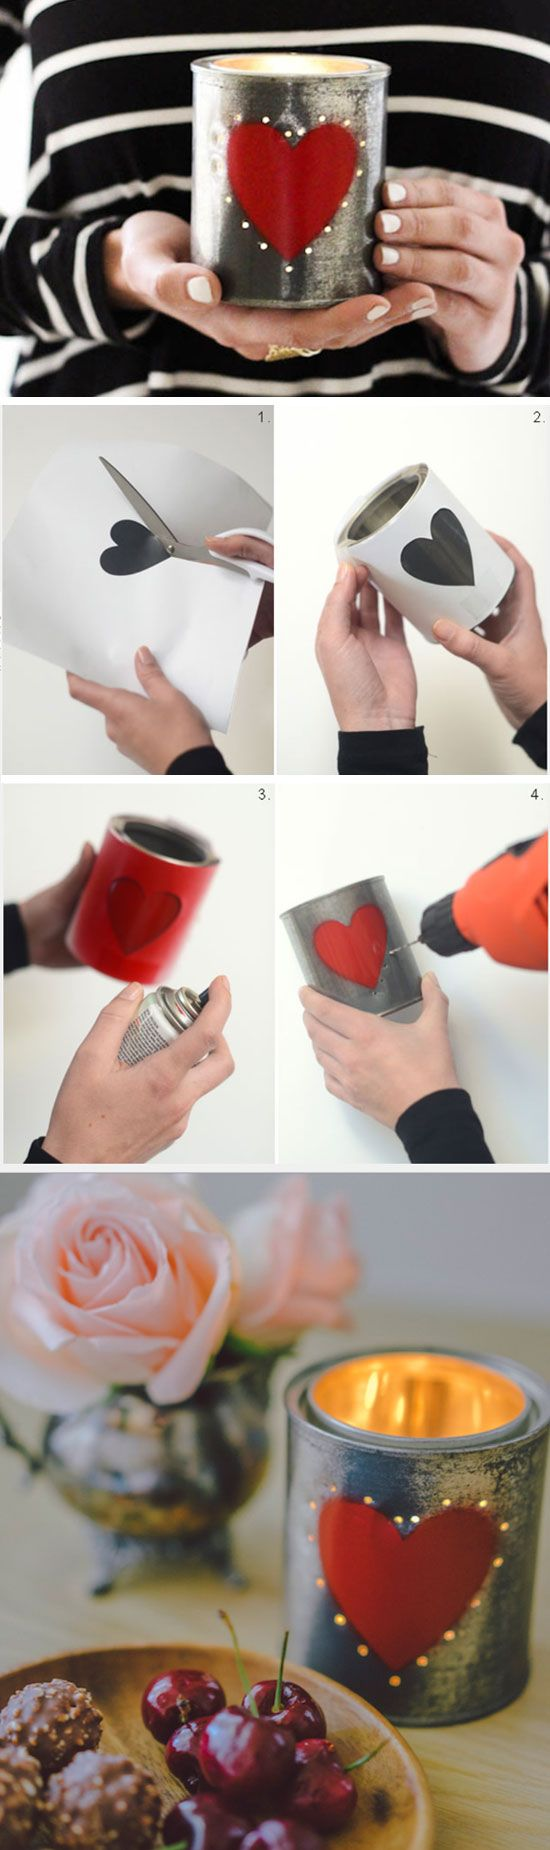 Hearty Votives | Click Pick for 26 DIY Romantic Valentines Day ...